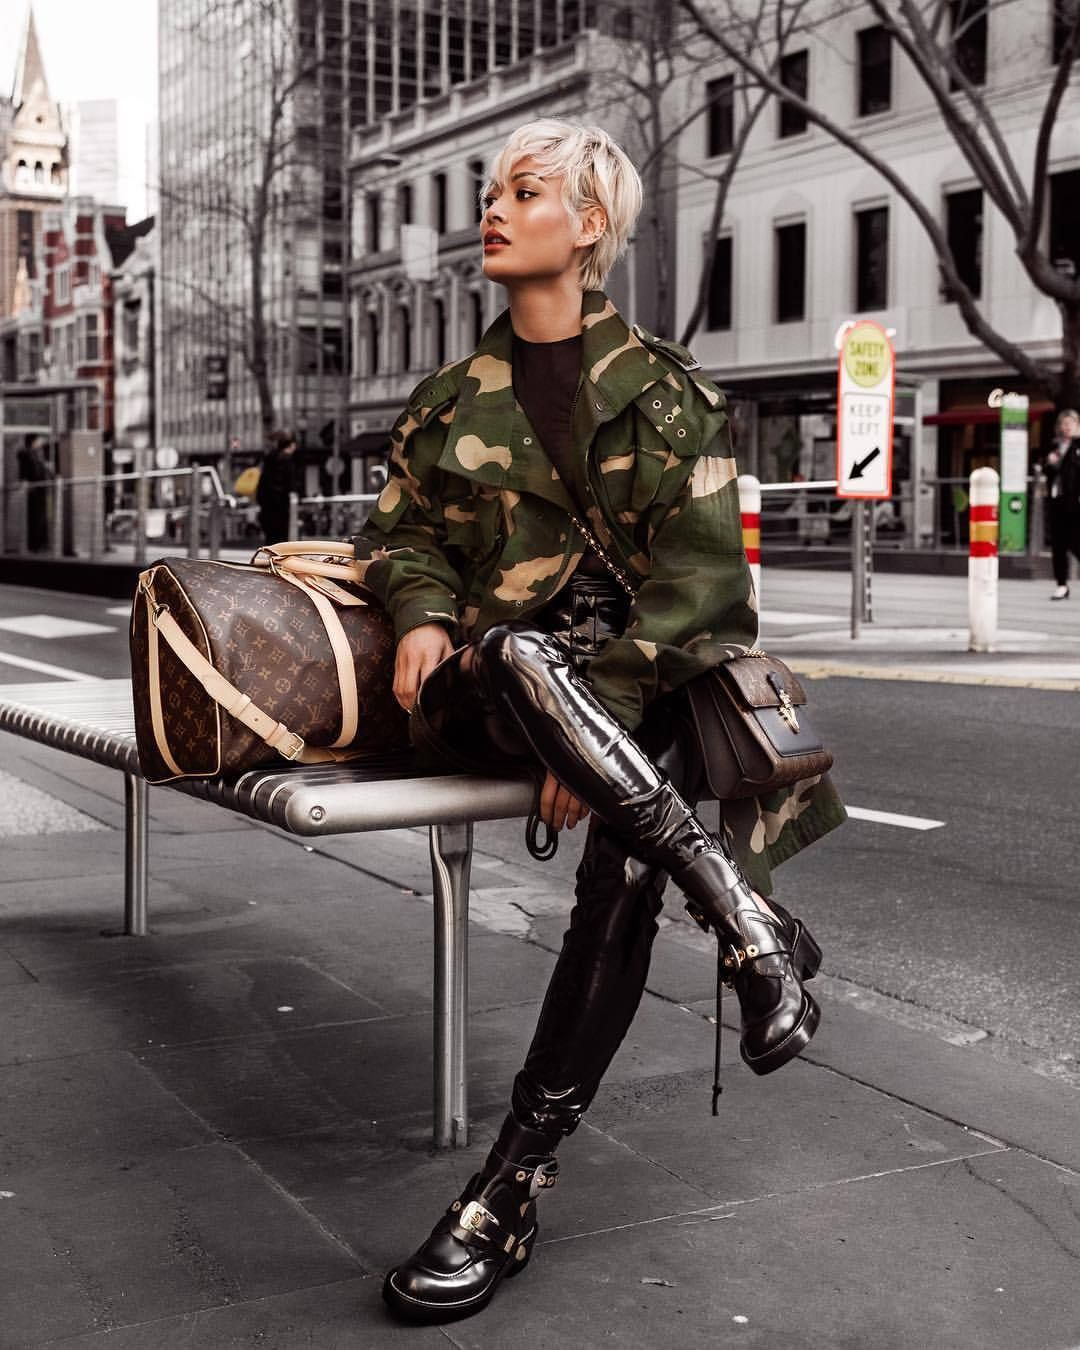 Outfit ideas leather pants bus, military camouflage, military uniform, leather jacket, patent le ...